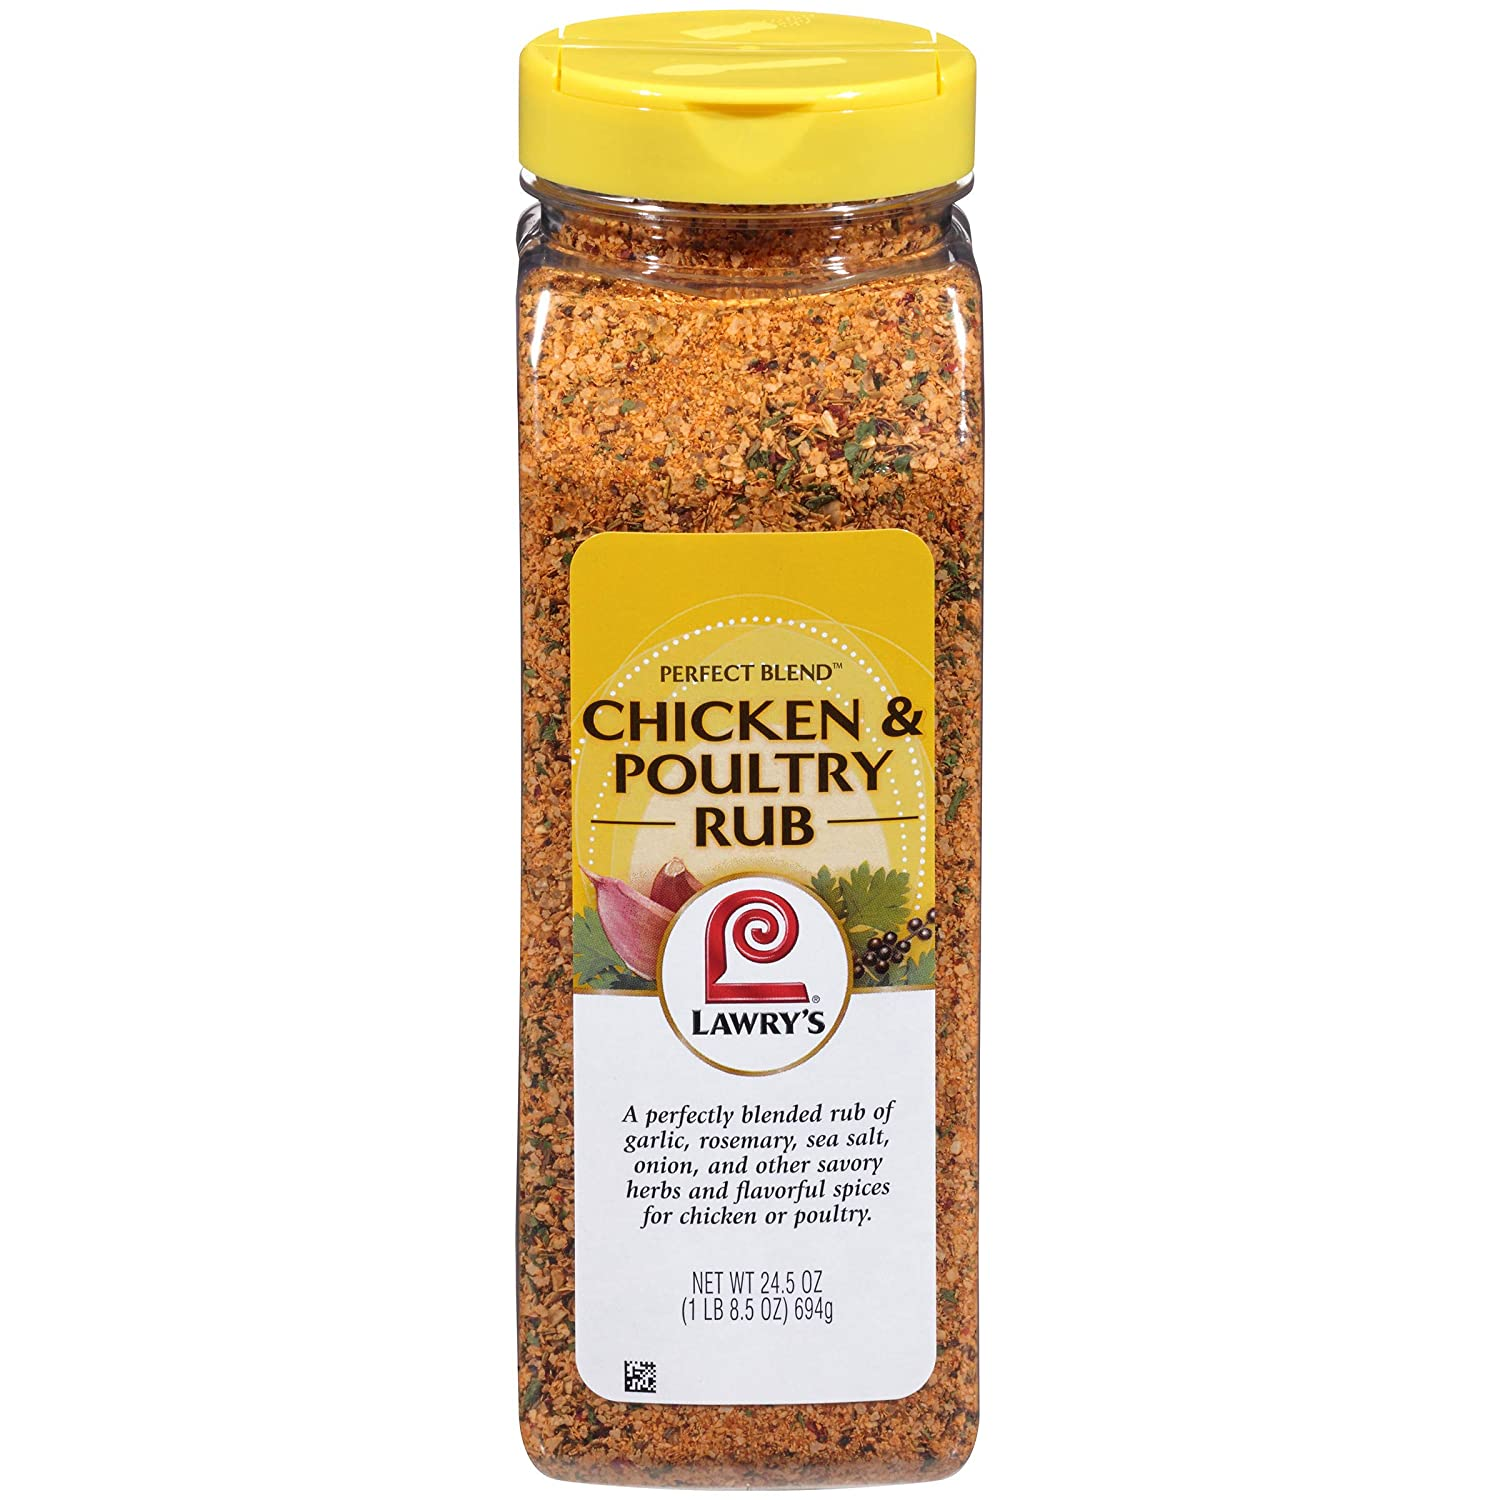 Lawry's Perfect Blend Chicken Rub, 24.5 OZ